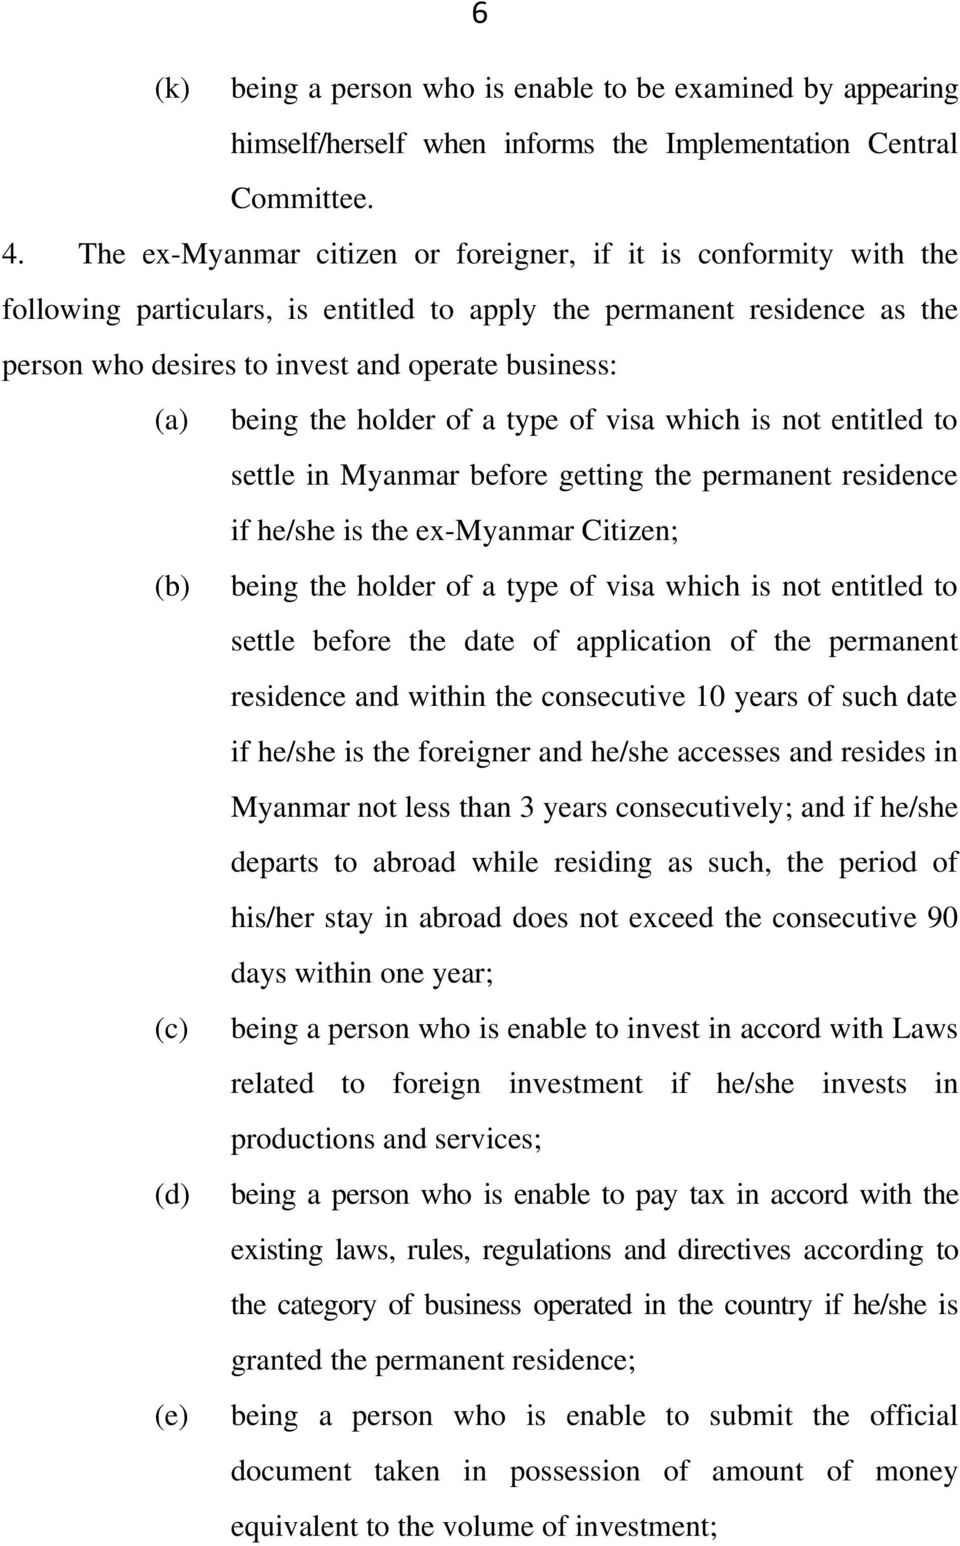 the holder of a type of visa which is not entitled to settle in Myanmar before getting the permanent residence if he/she is the ex-myanmar Citizen; being the holder of a type of visa which is not